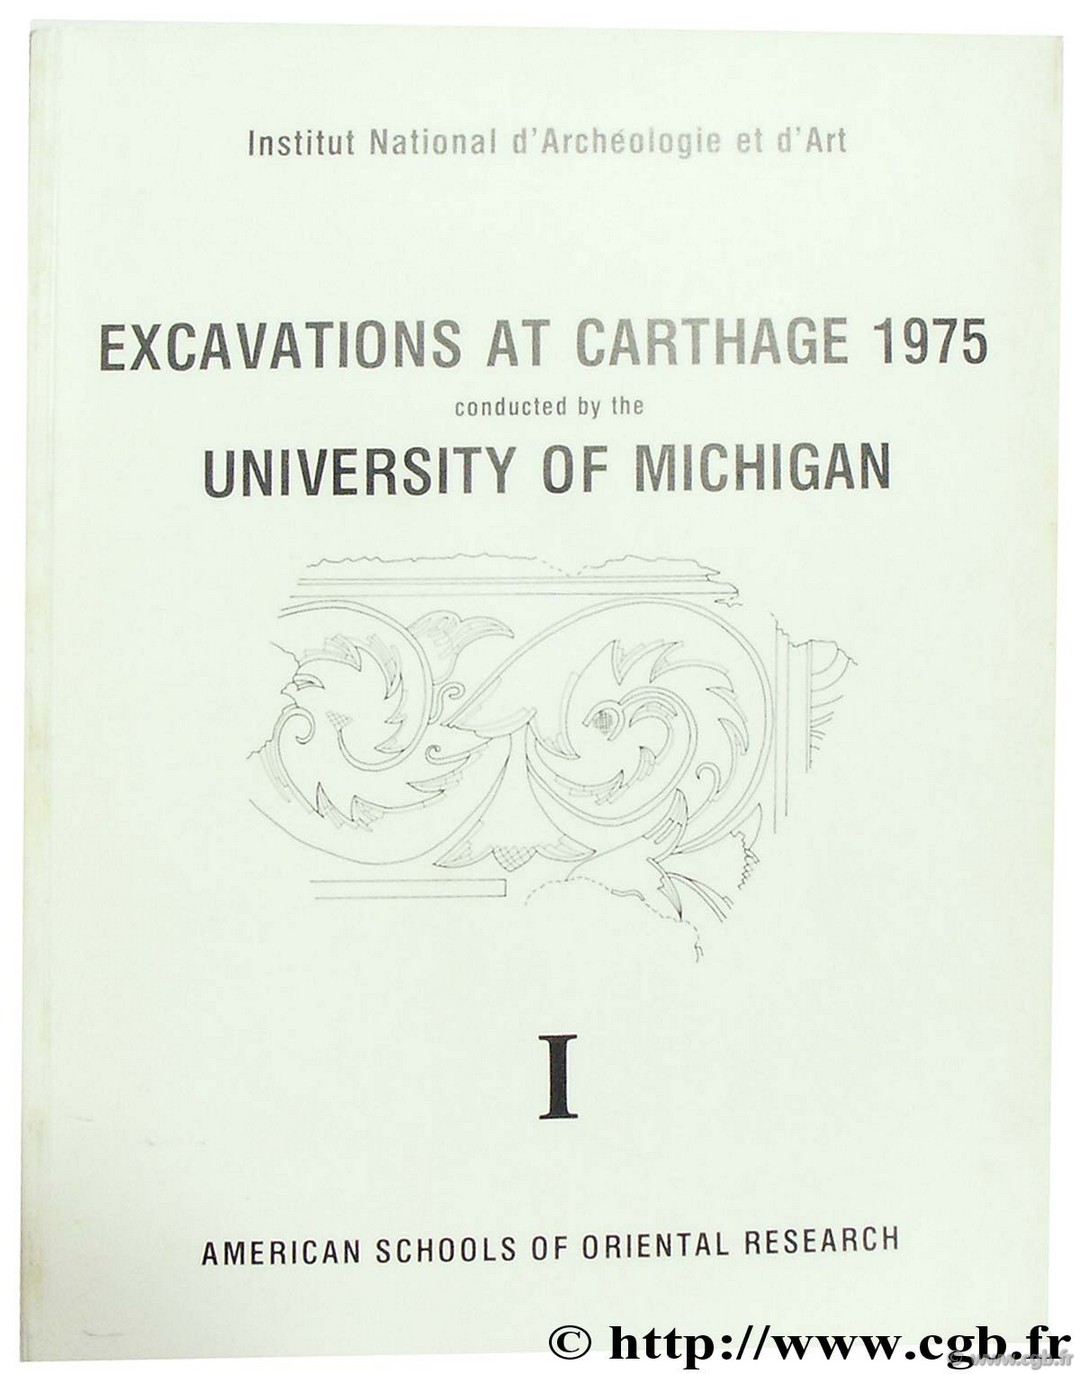 Excavations at Carthage 1975 coducted by the University of Michigan HUMPHREY J.-H.